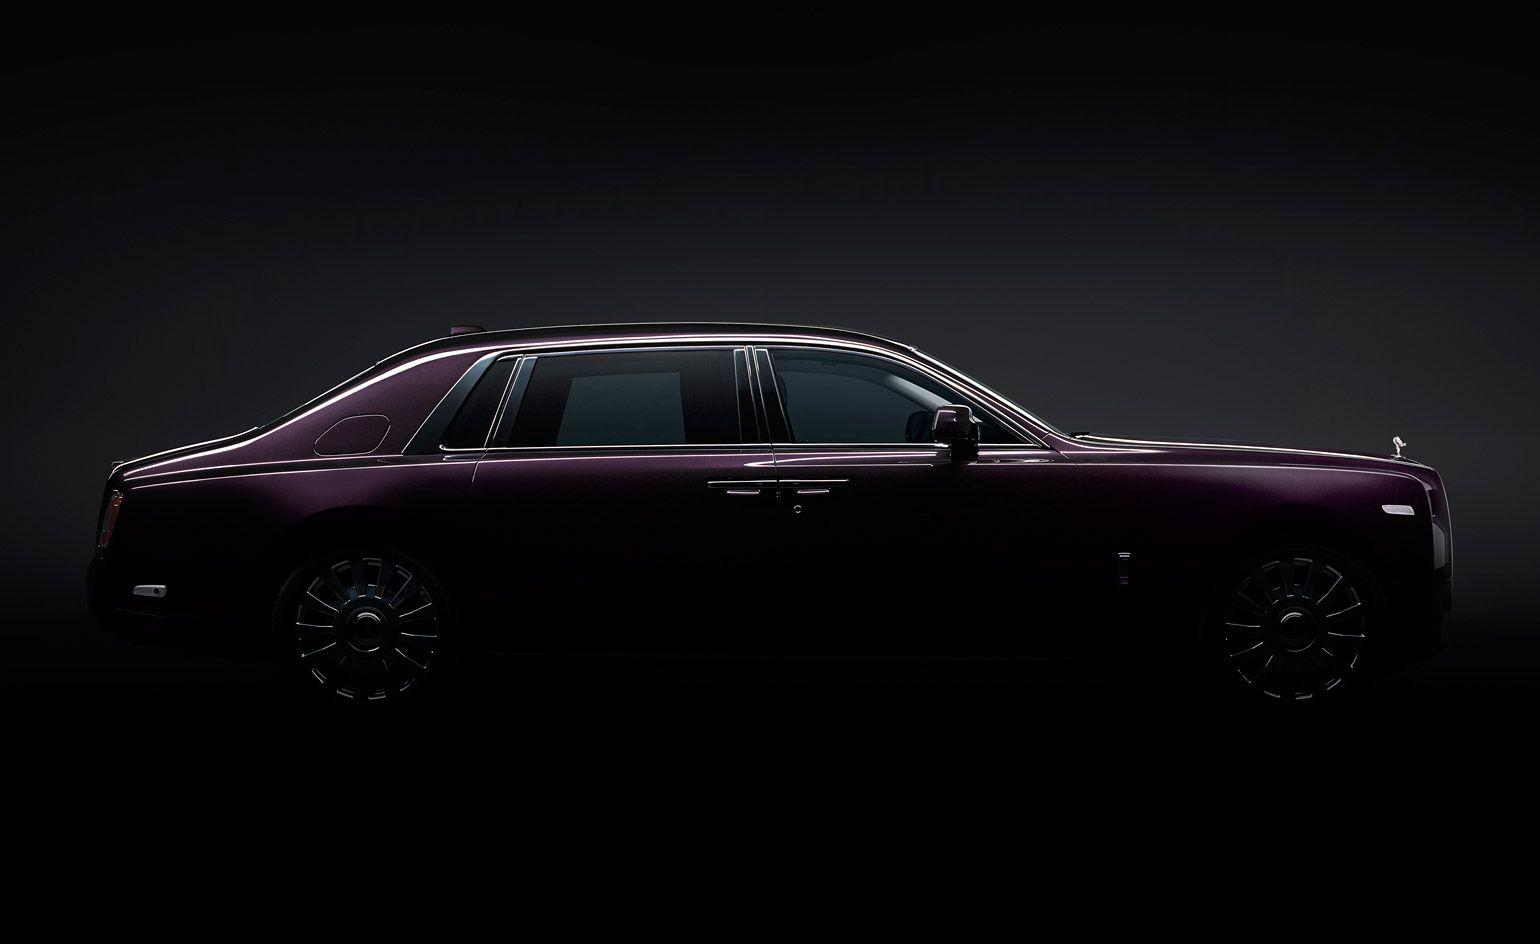 Rolls-Royce Phantom 2018: in pictures | Wallpaper*